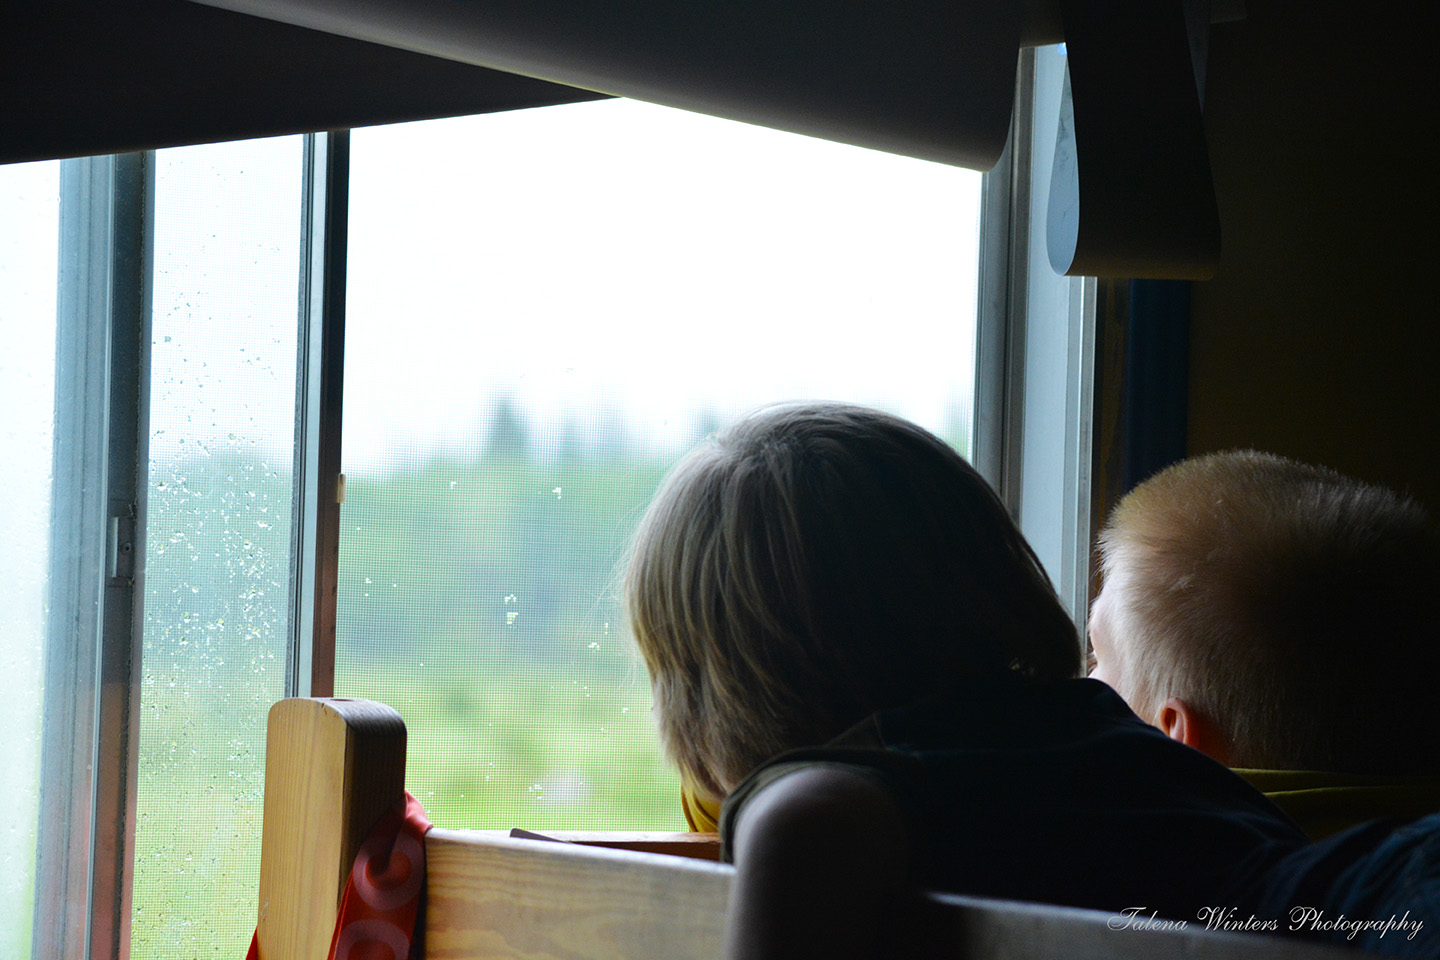 Jabin and Noah watch a lightning storm together on Noah's bunk. Lightning storms are rare here, so they were fascinated.